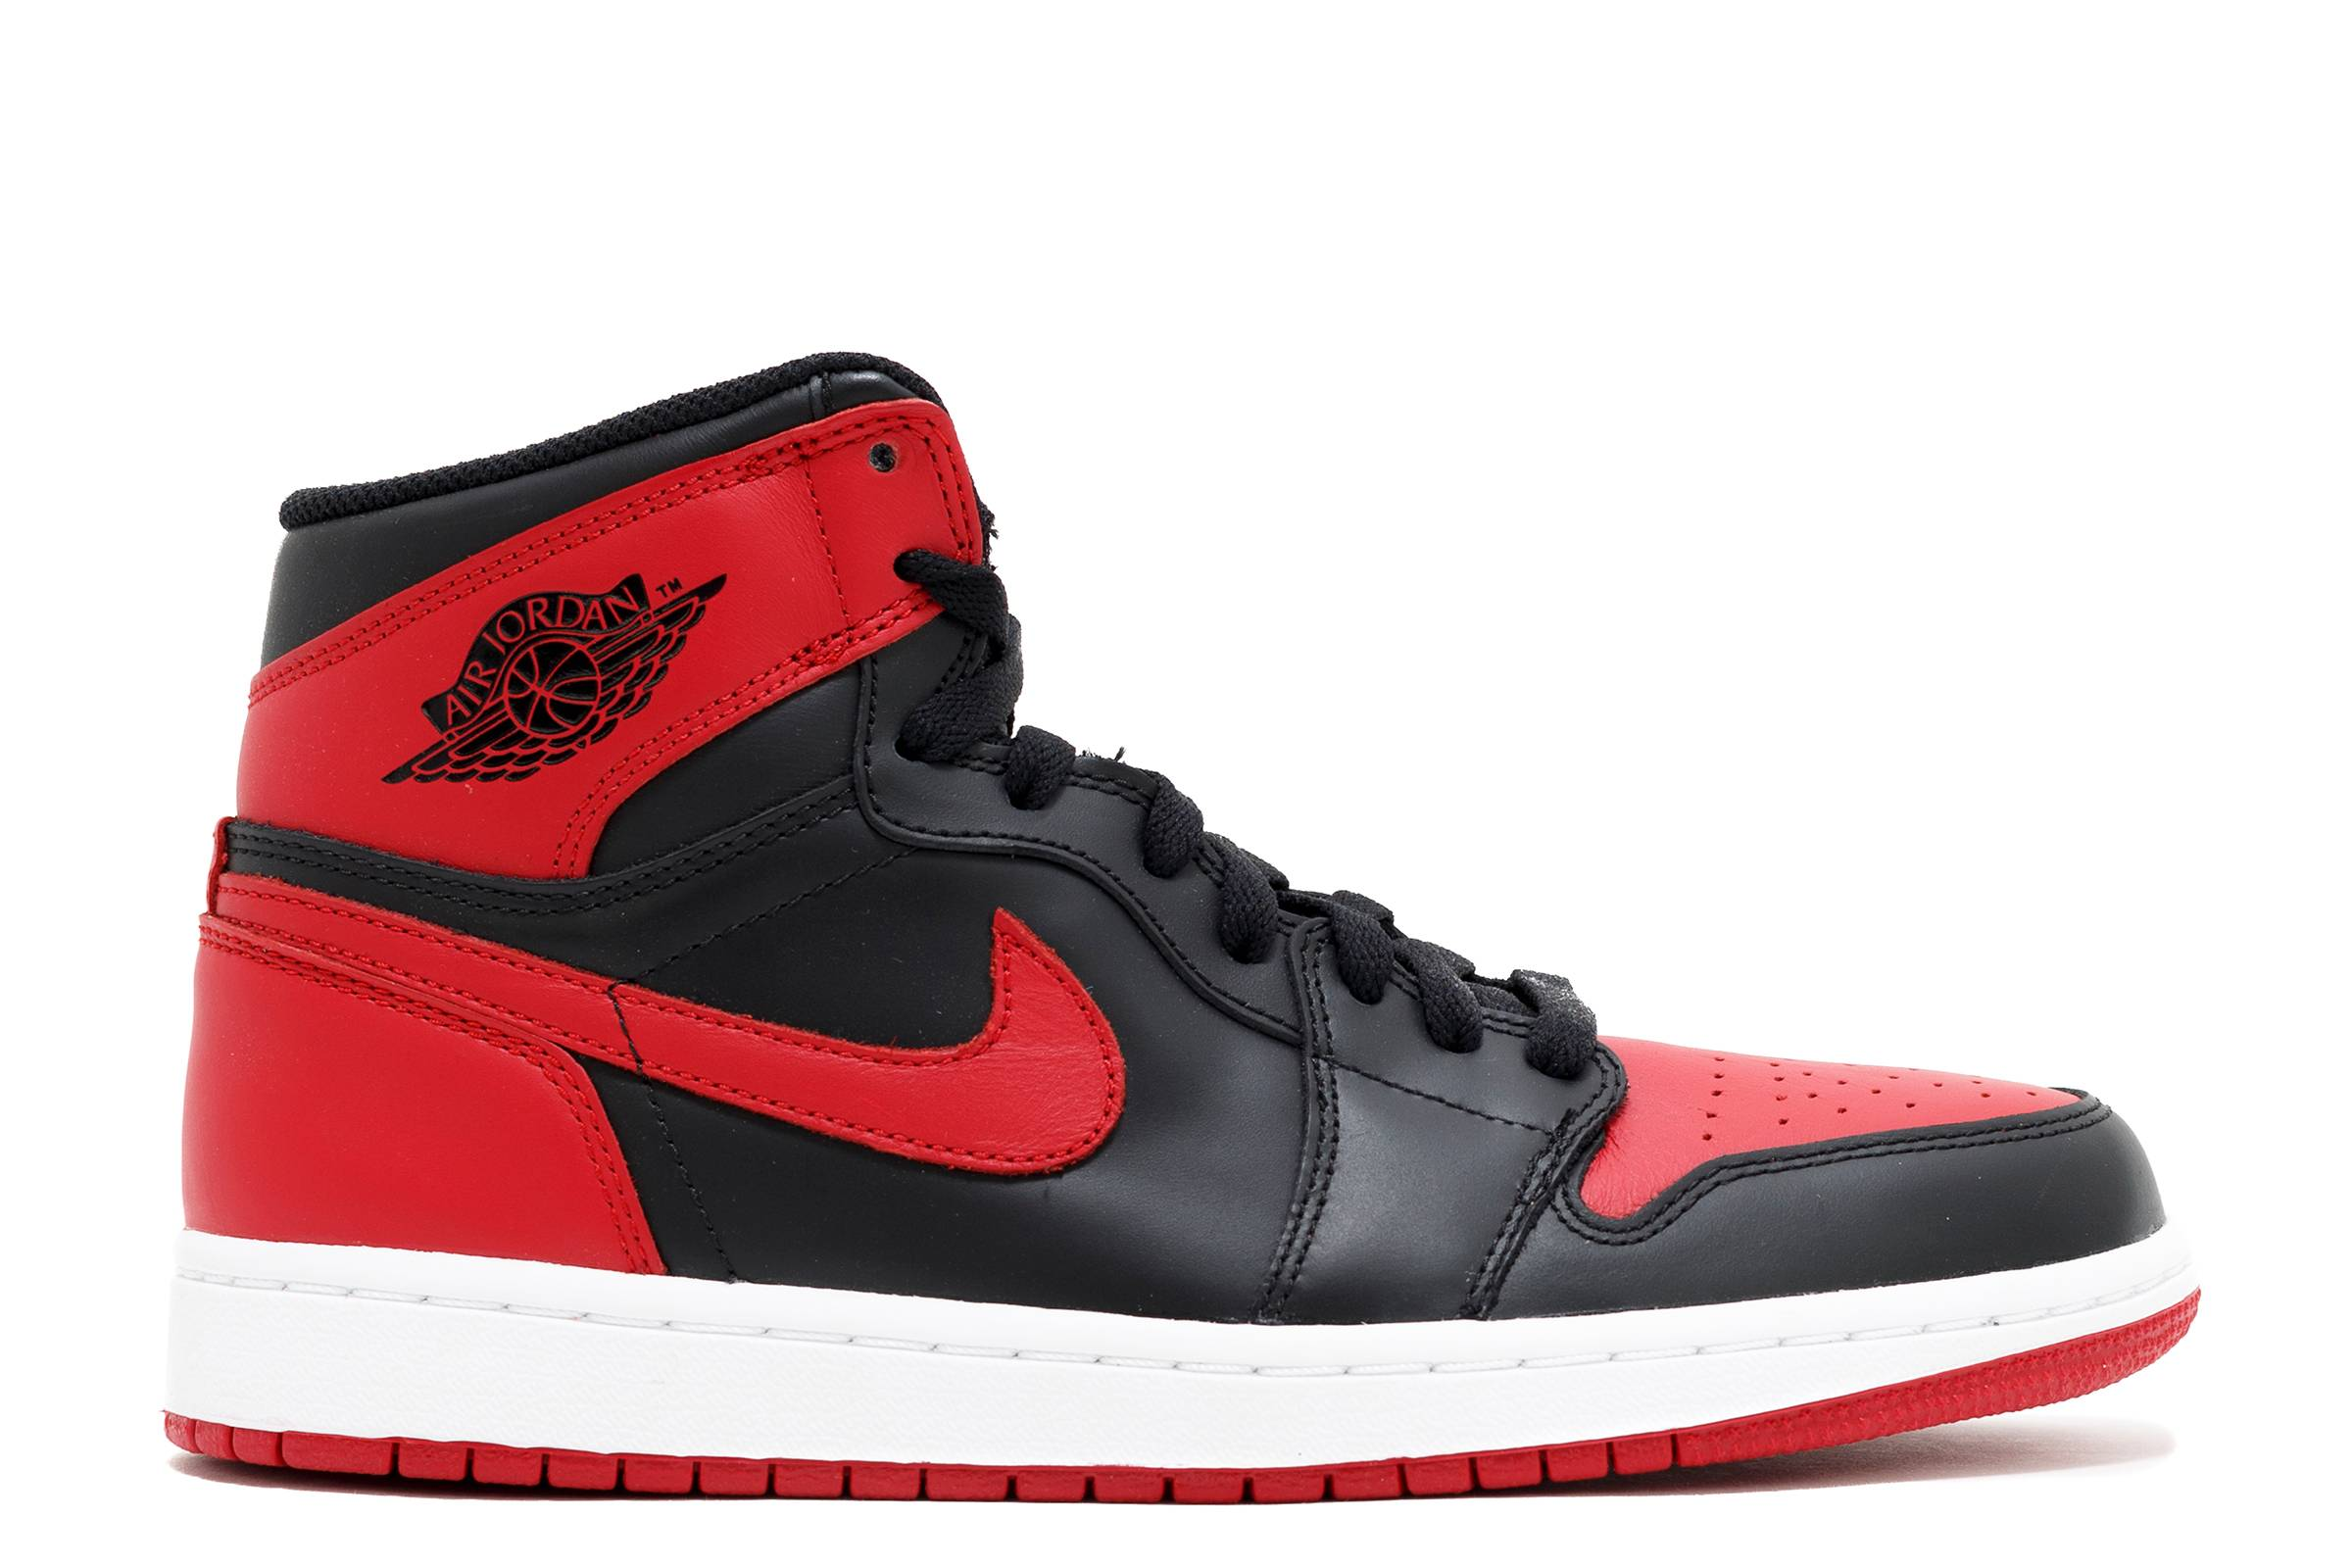 ad3bdbf9ce86ba The One That Started It All  A History of the Jordan 1 - Jordan 1 ...